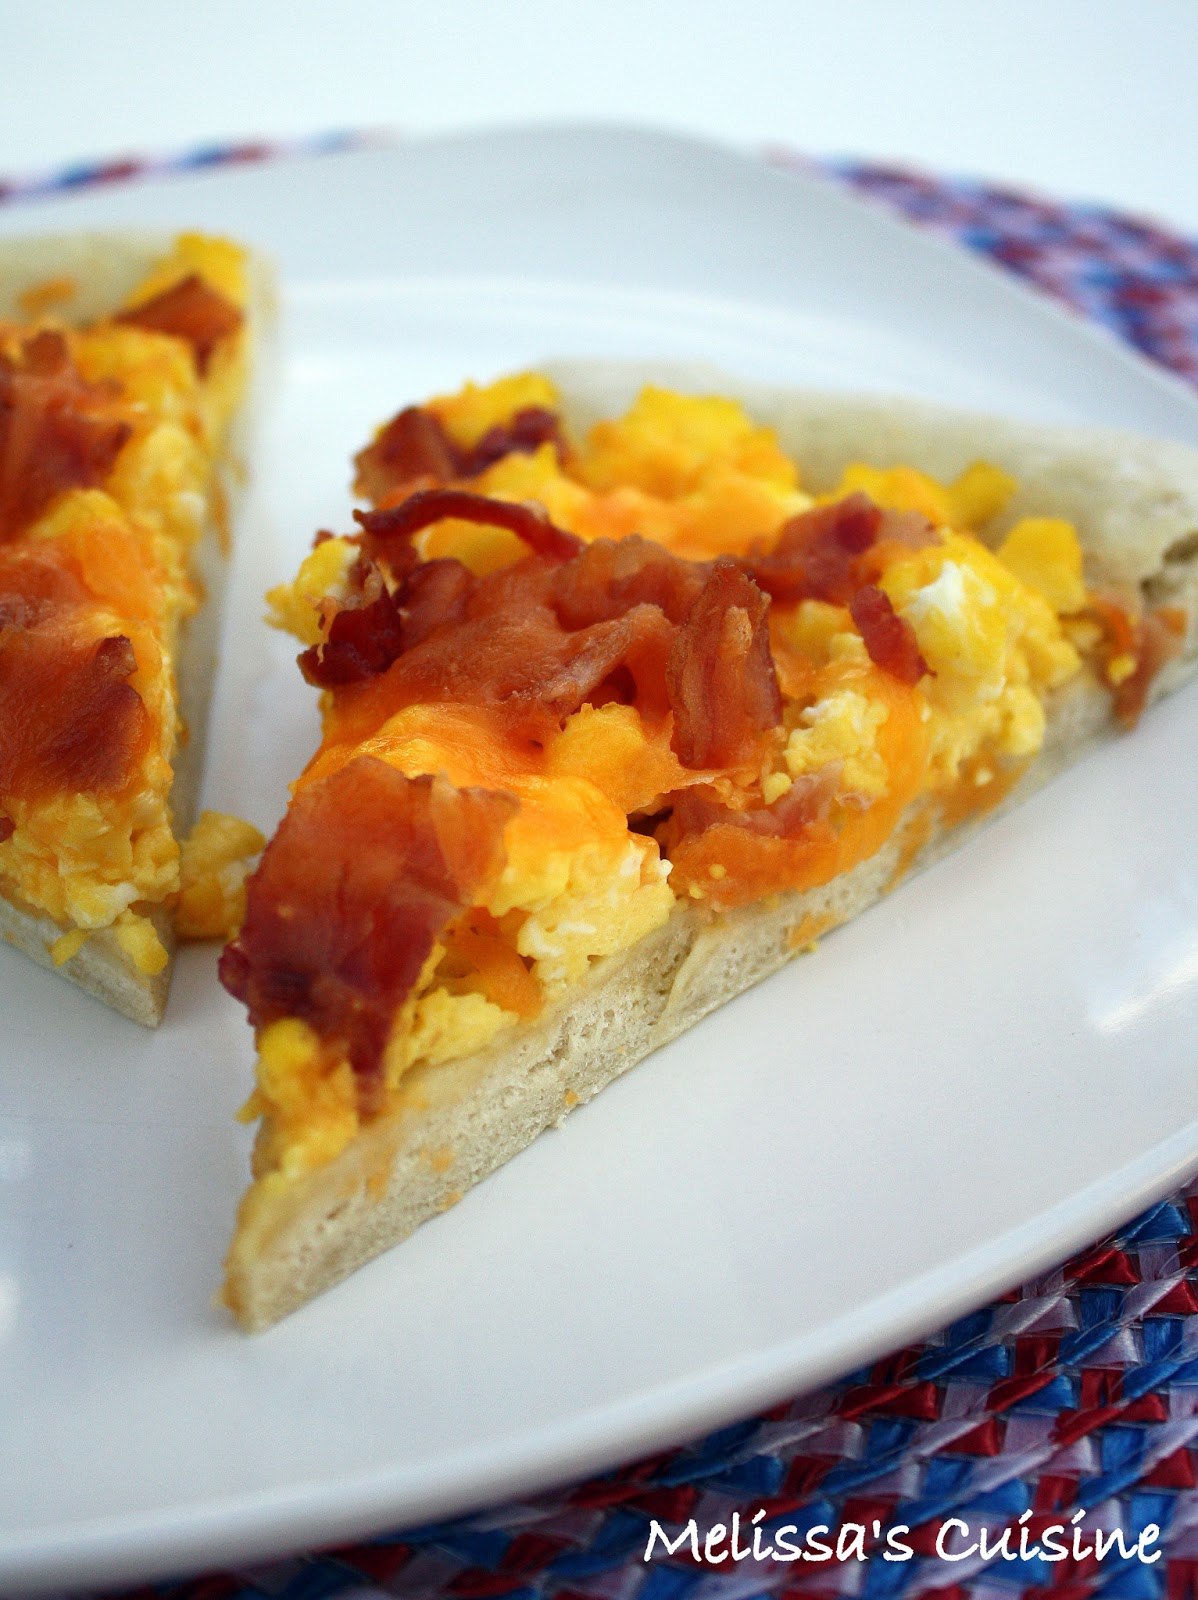 Melissa's Cuisine: Breakfast Pizza with Eggs and Bacon